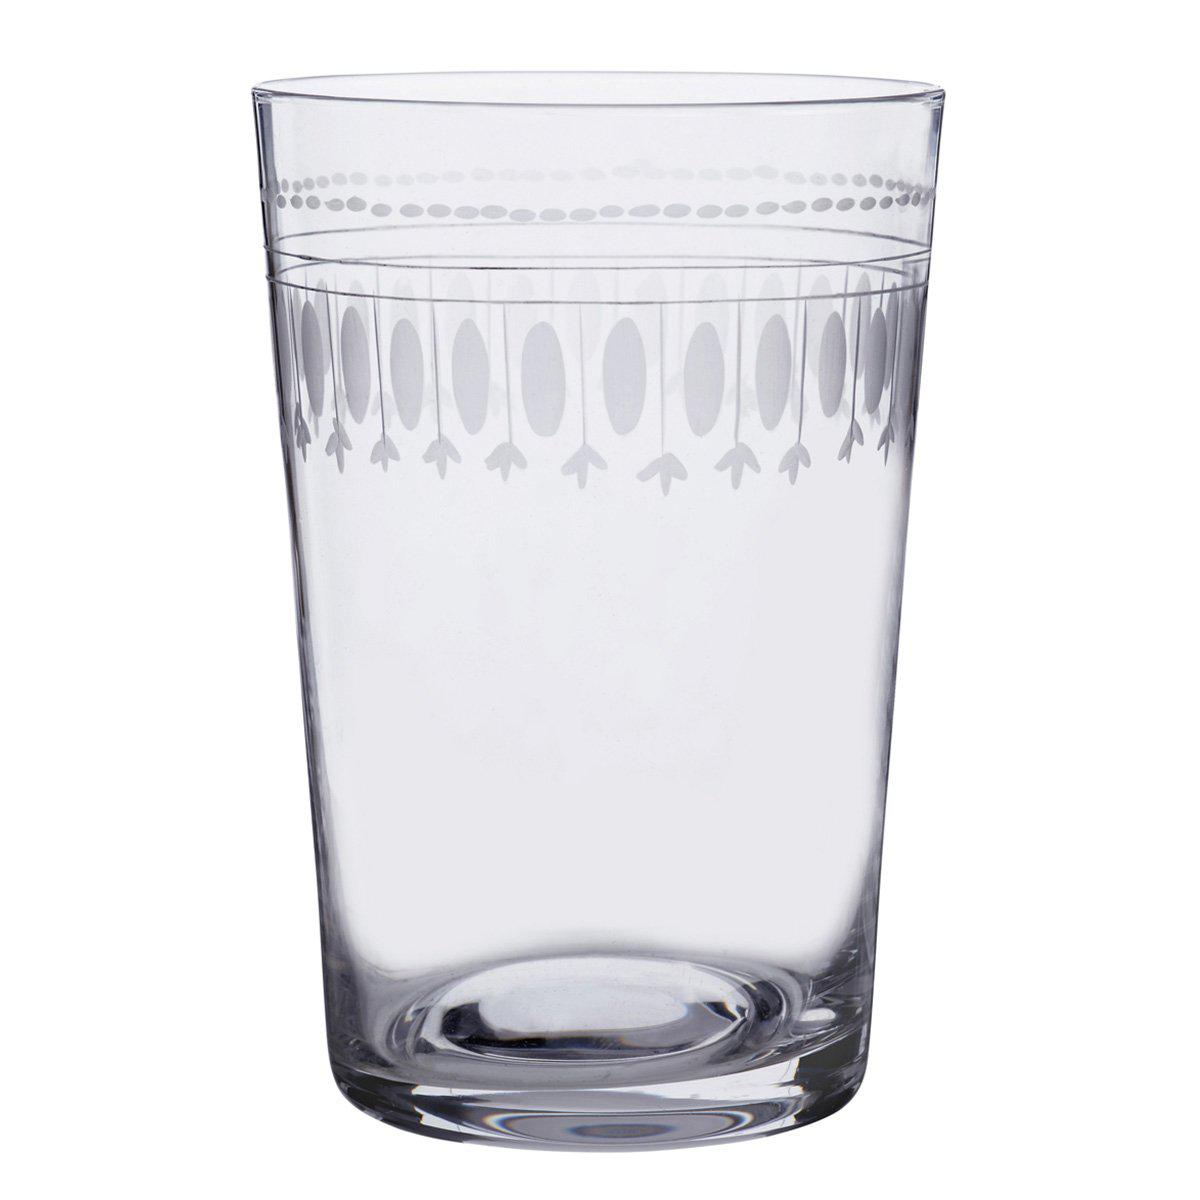 Ovals Crystal Tumblers Set of 6 - club matters